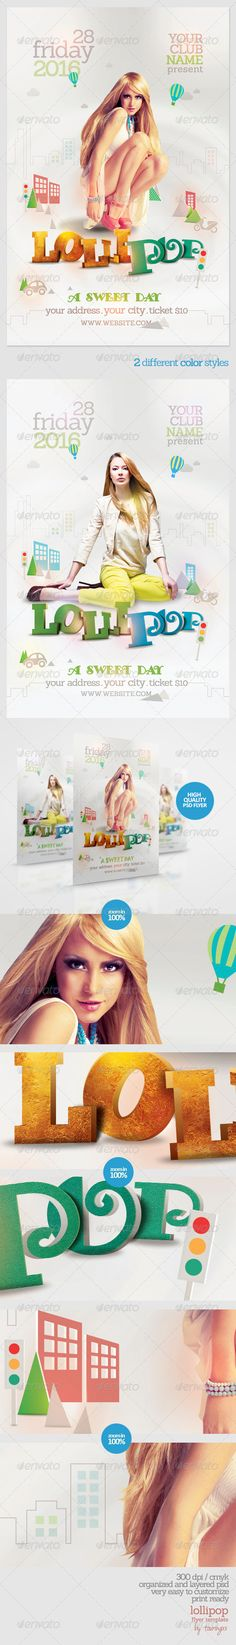 Lollipop Flyer Template / $6. ***This flyer is perfect for the promotion of Events, Club Parties, Shops/Boutiques, New Collections, Concerts, Sales/Promotions or Whatever You Want!.***